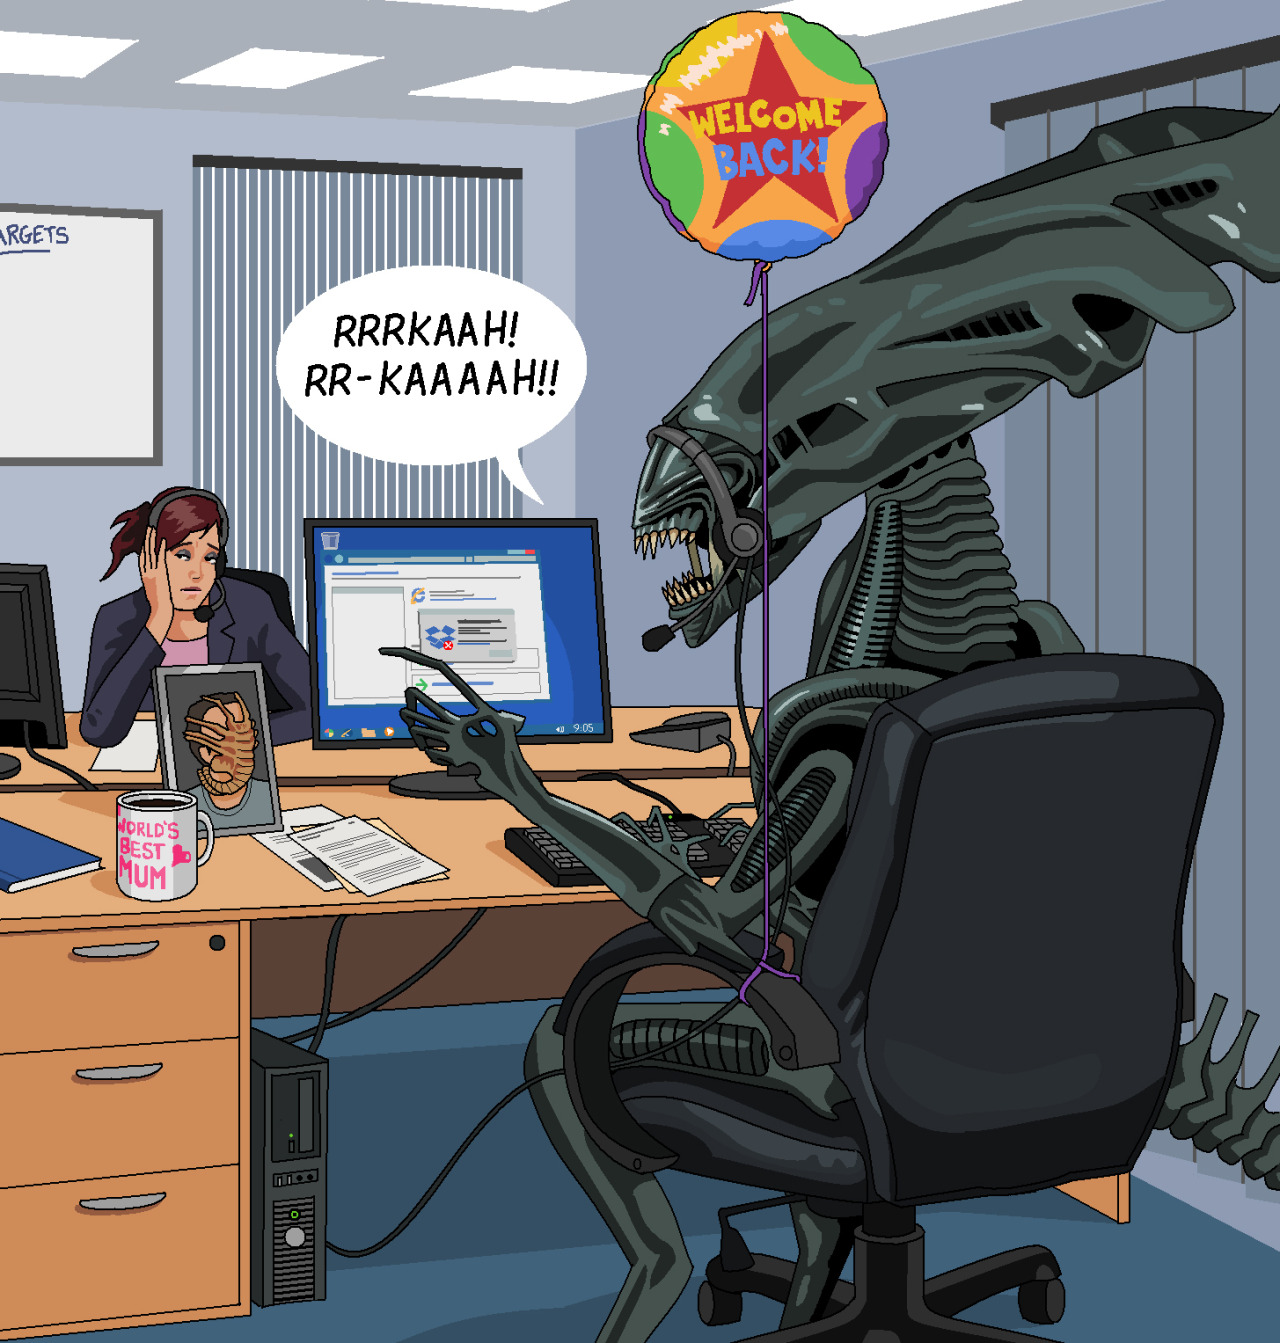 The Alien Queen, back off maternity leave